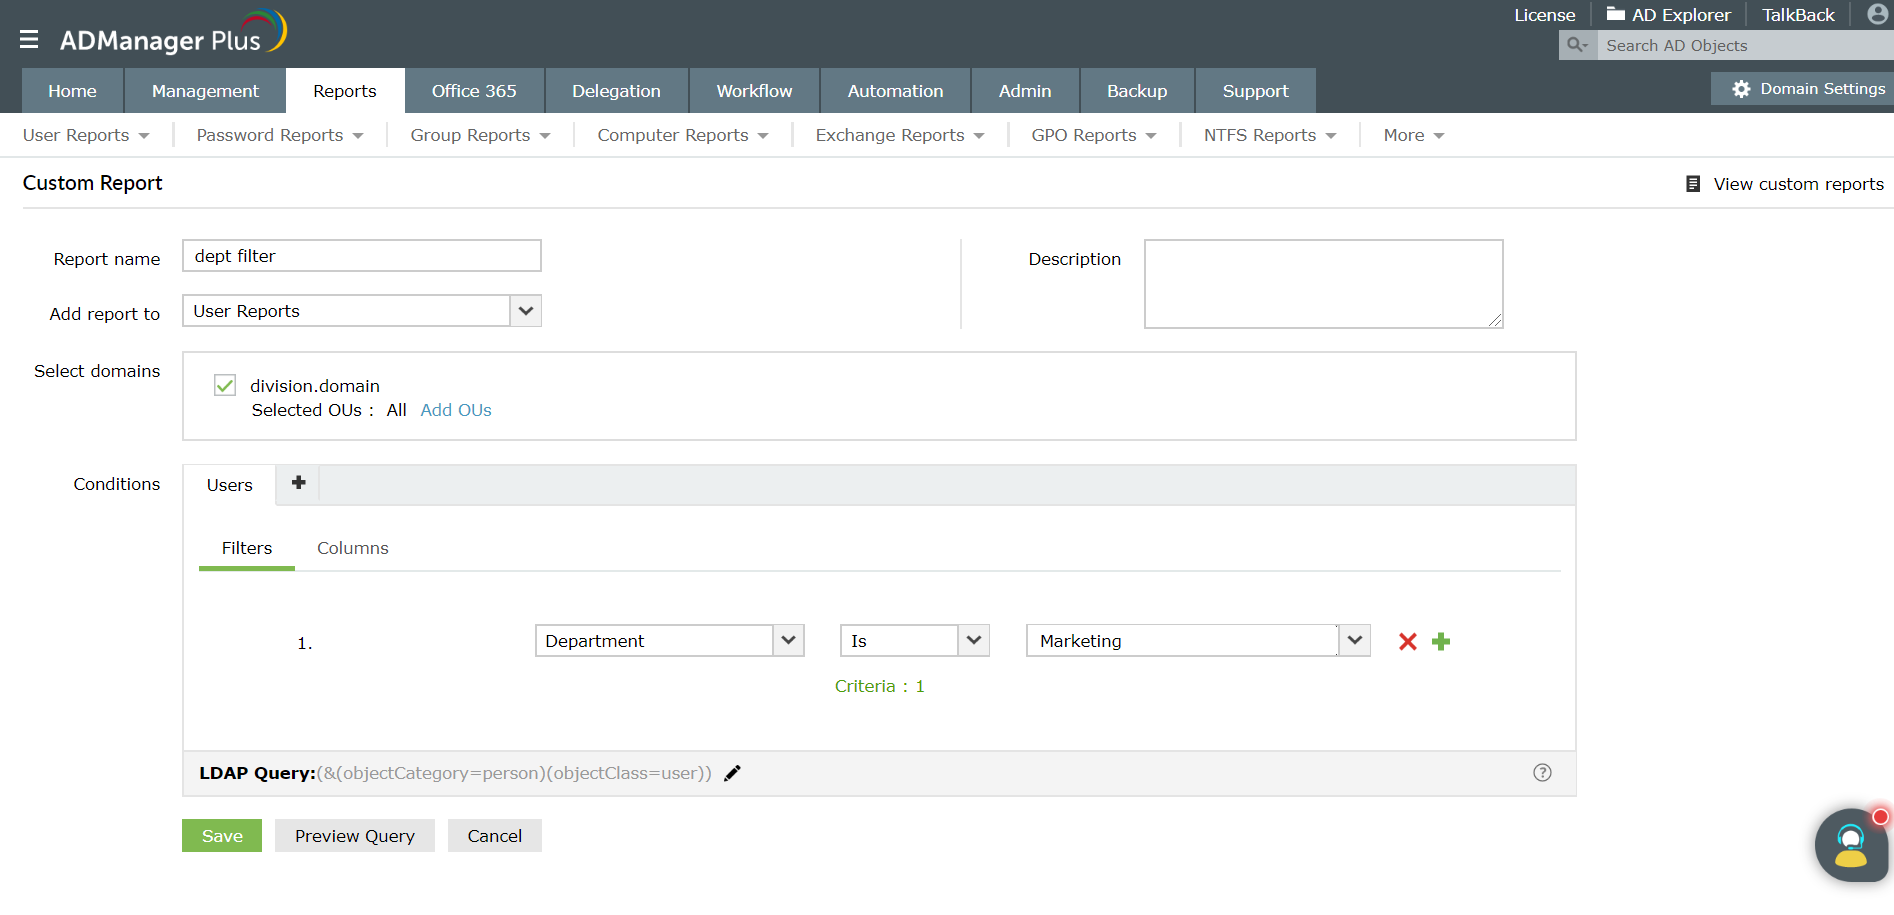 Screenshot of custom reports in ADManager Plus filtering AD users by departments